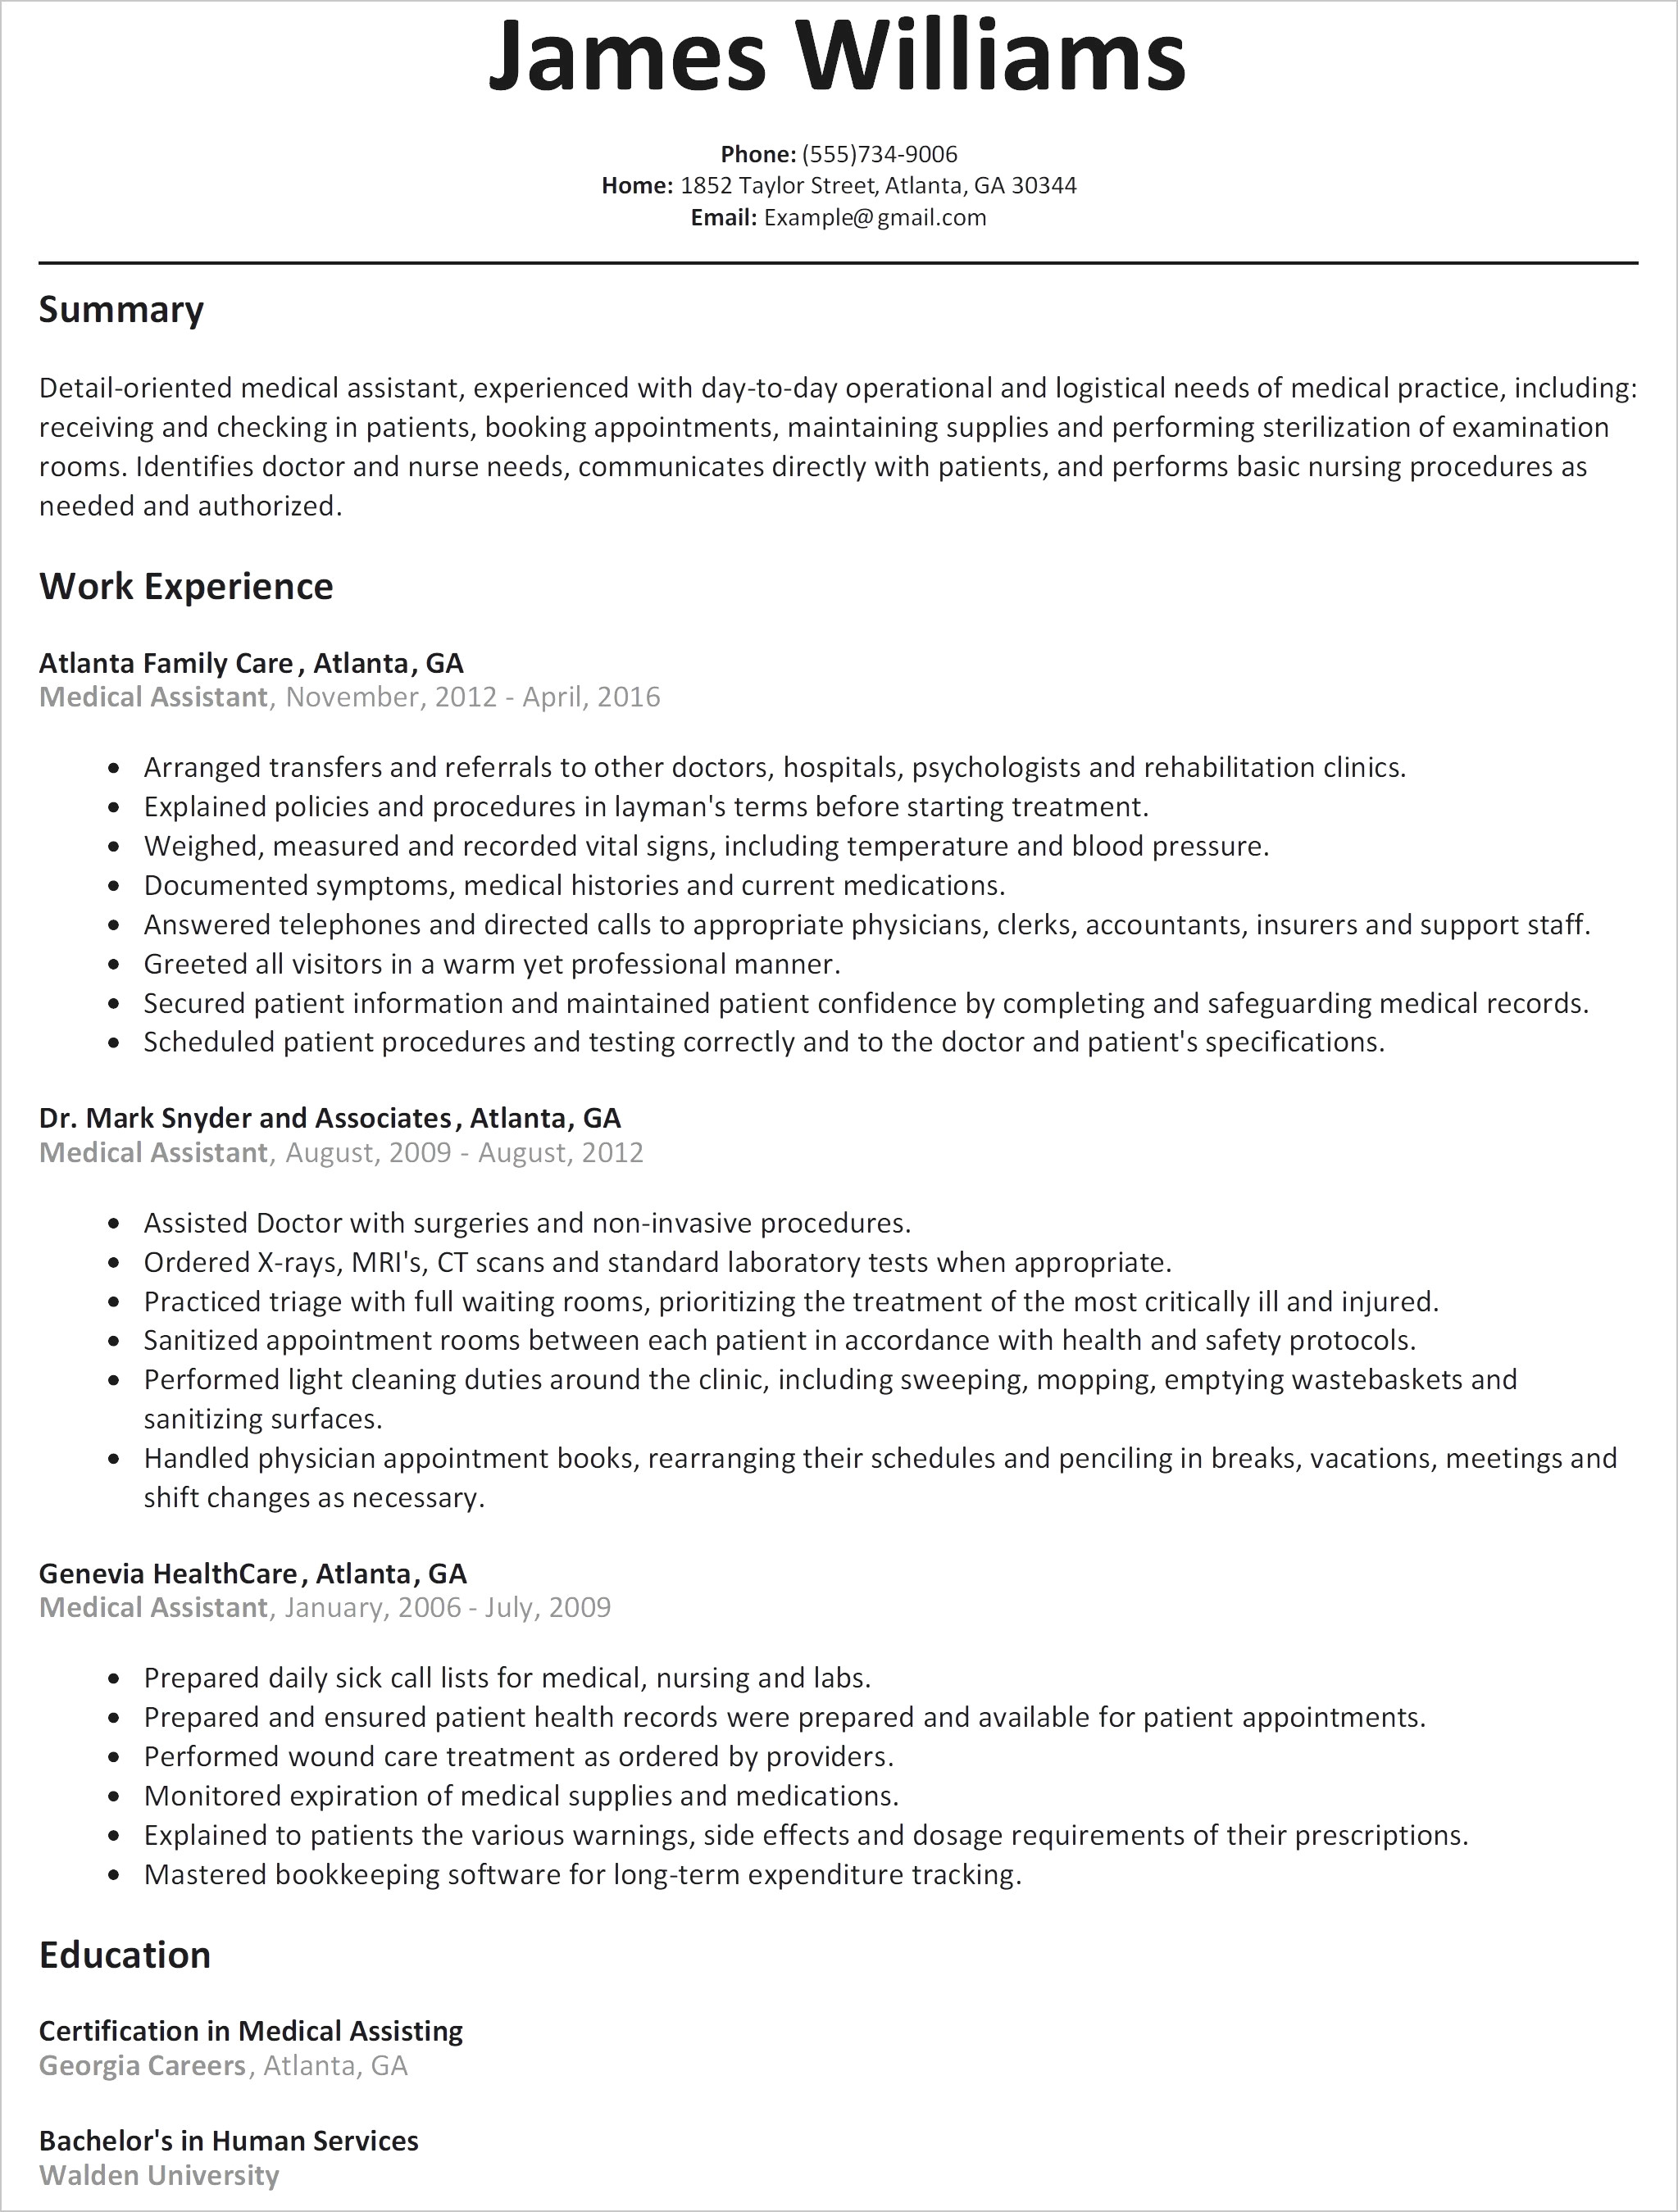 Careerbuilder Free Resume Template - 32 Unbelievable Career Builder Resume